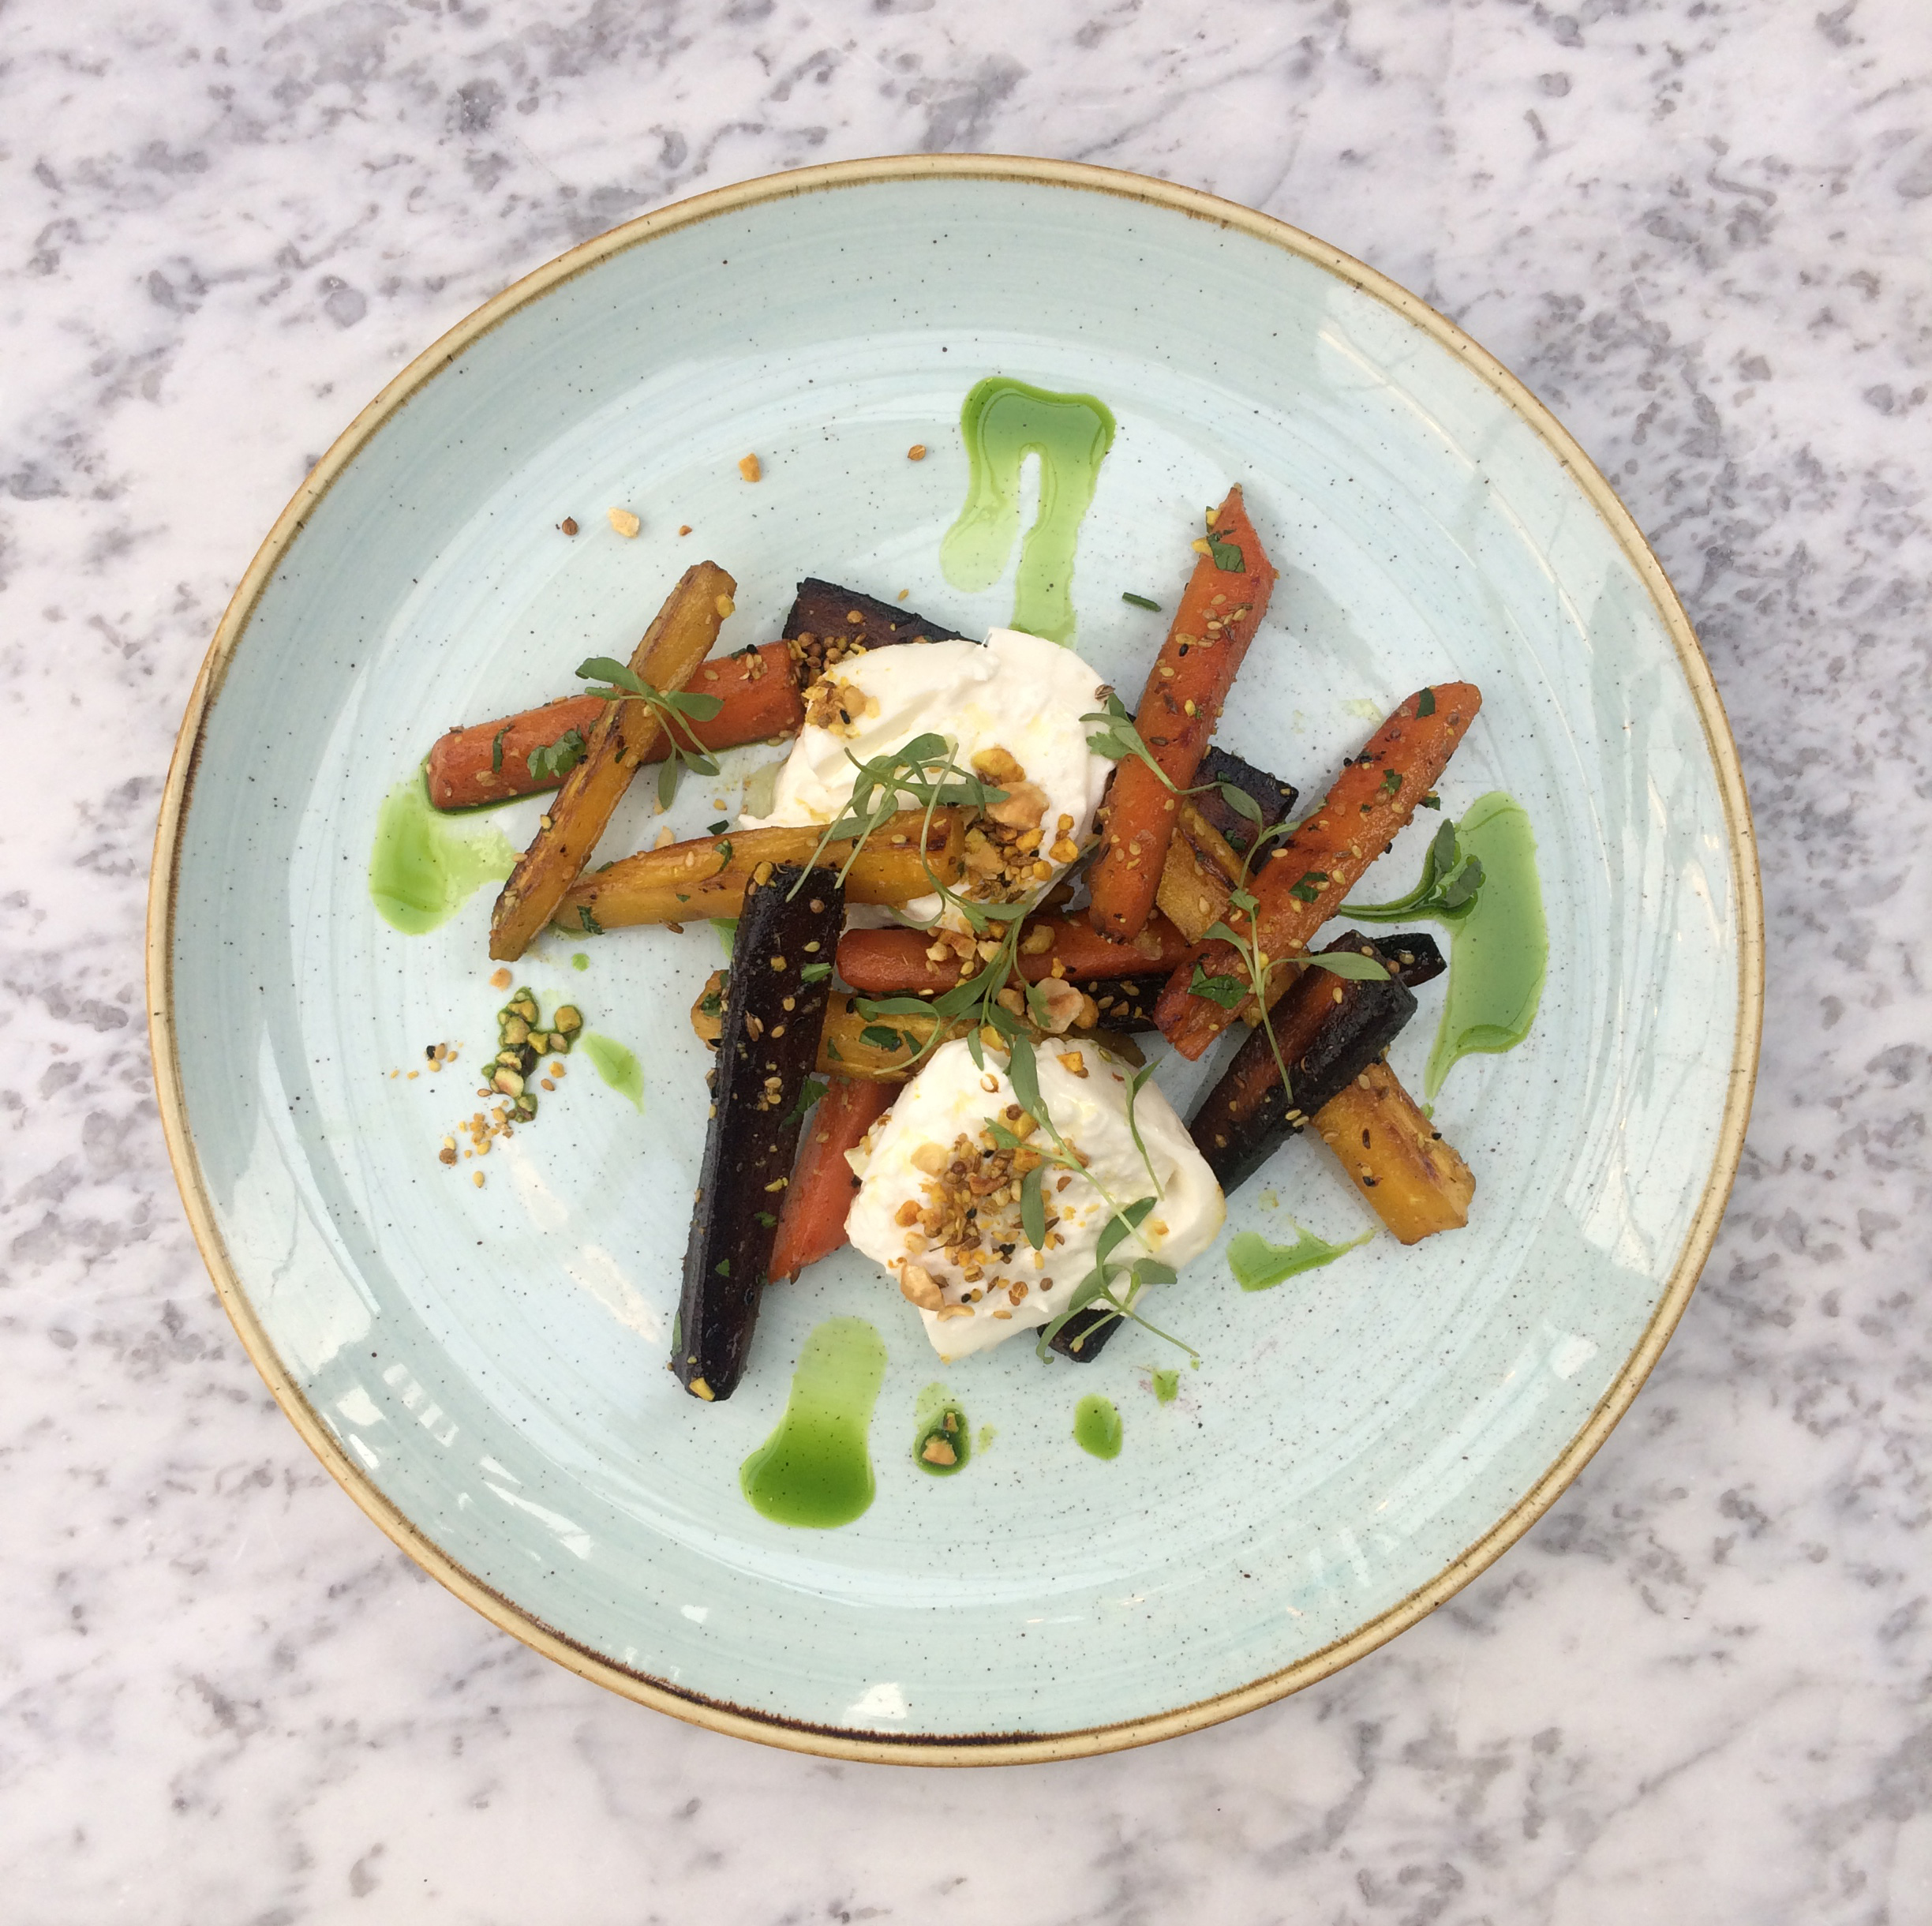 BURATTA WITH ROASTED HERITAGE CARROTS & DUKKAH